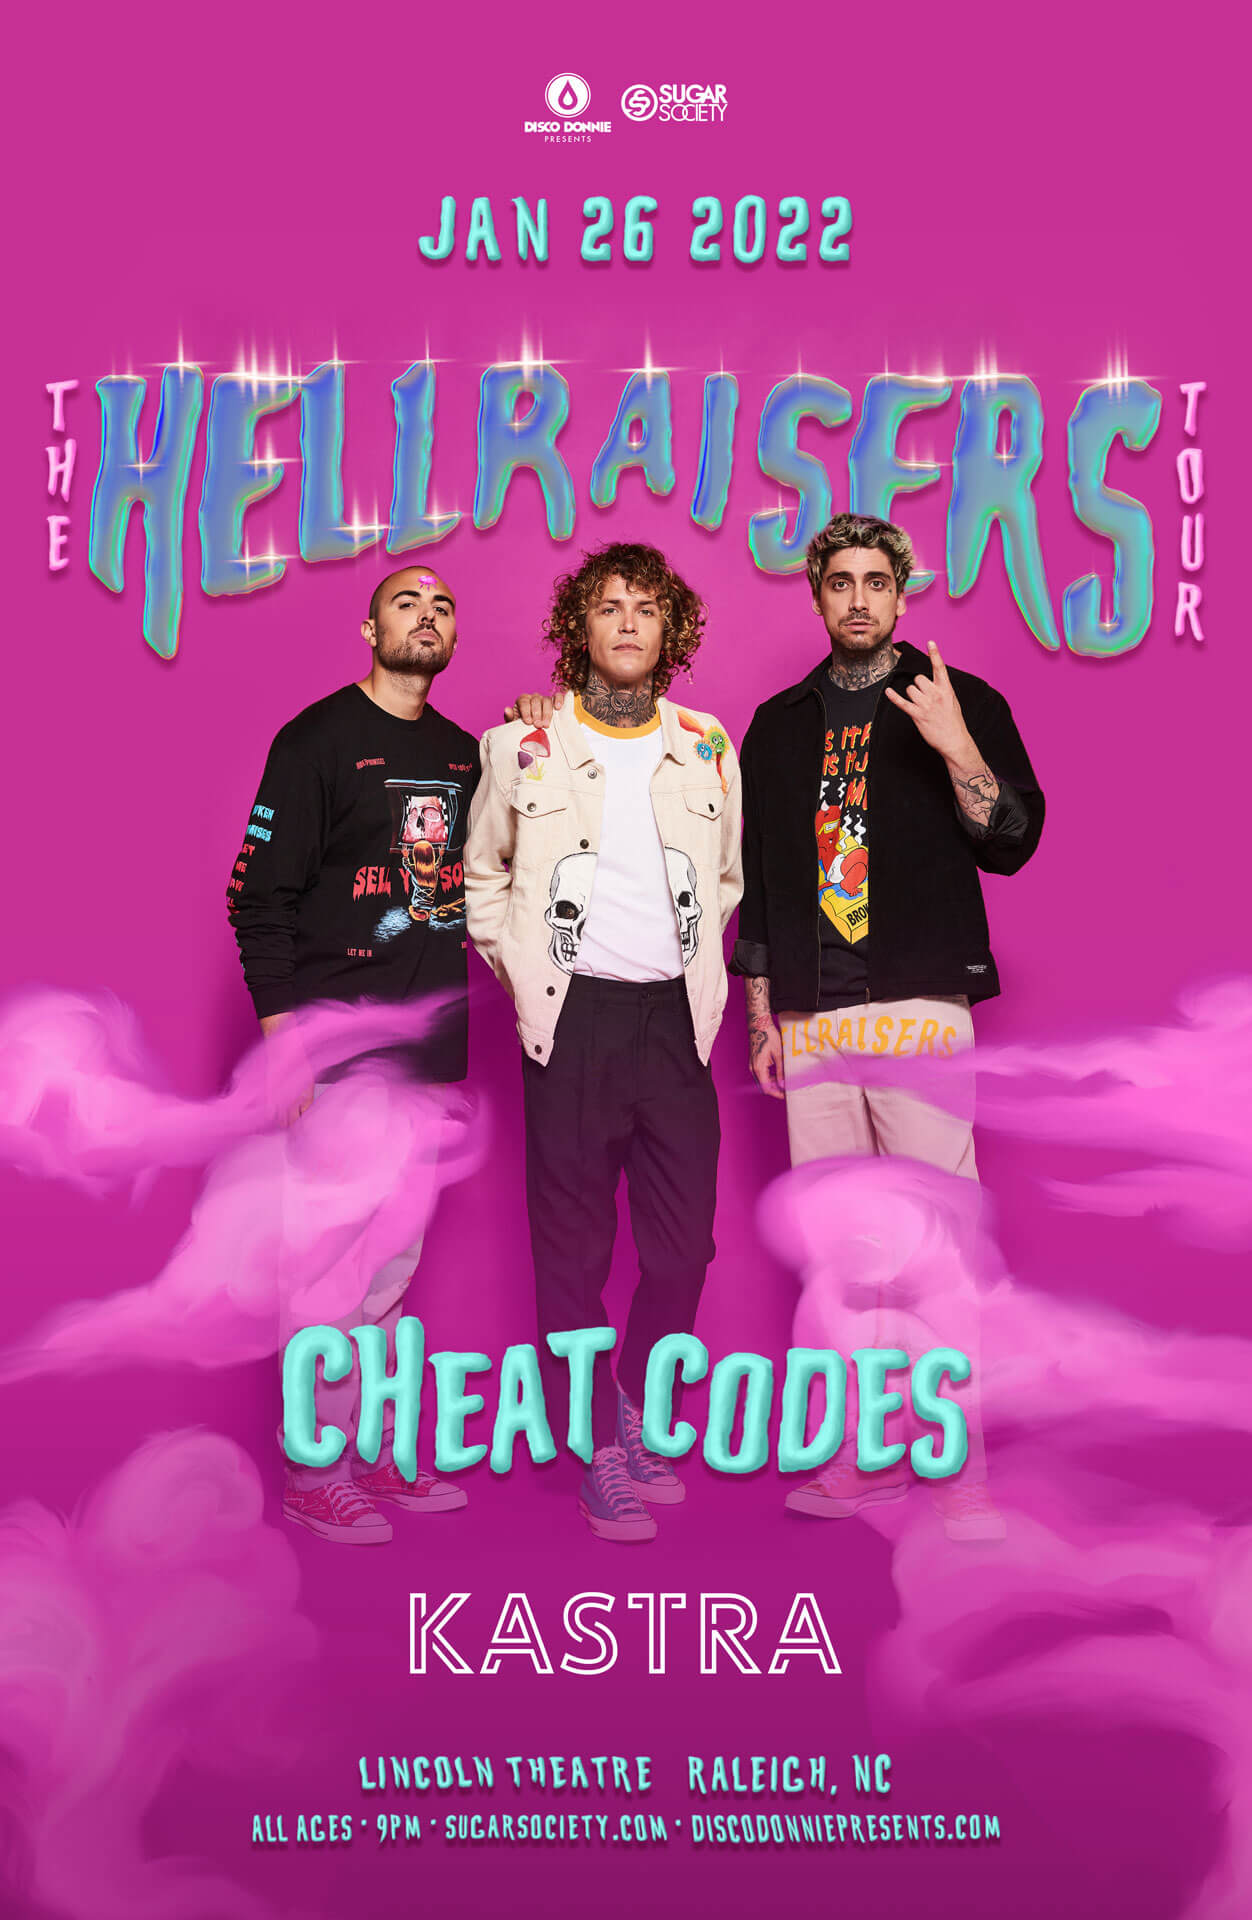 Cheat Codes, Kastra in Raleigh